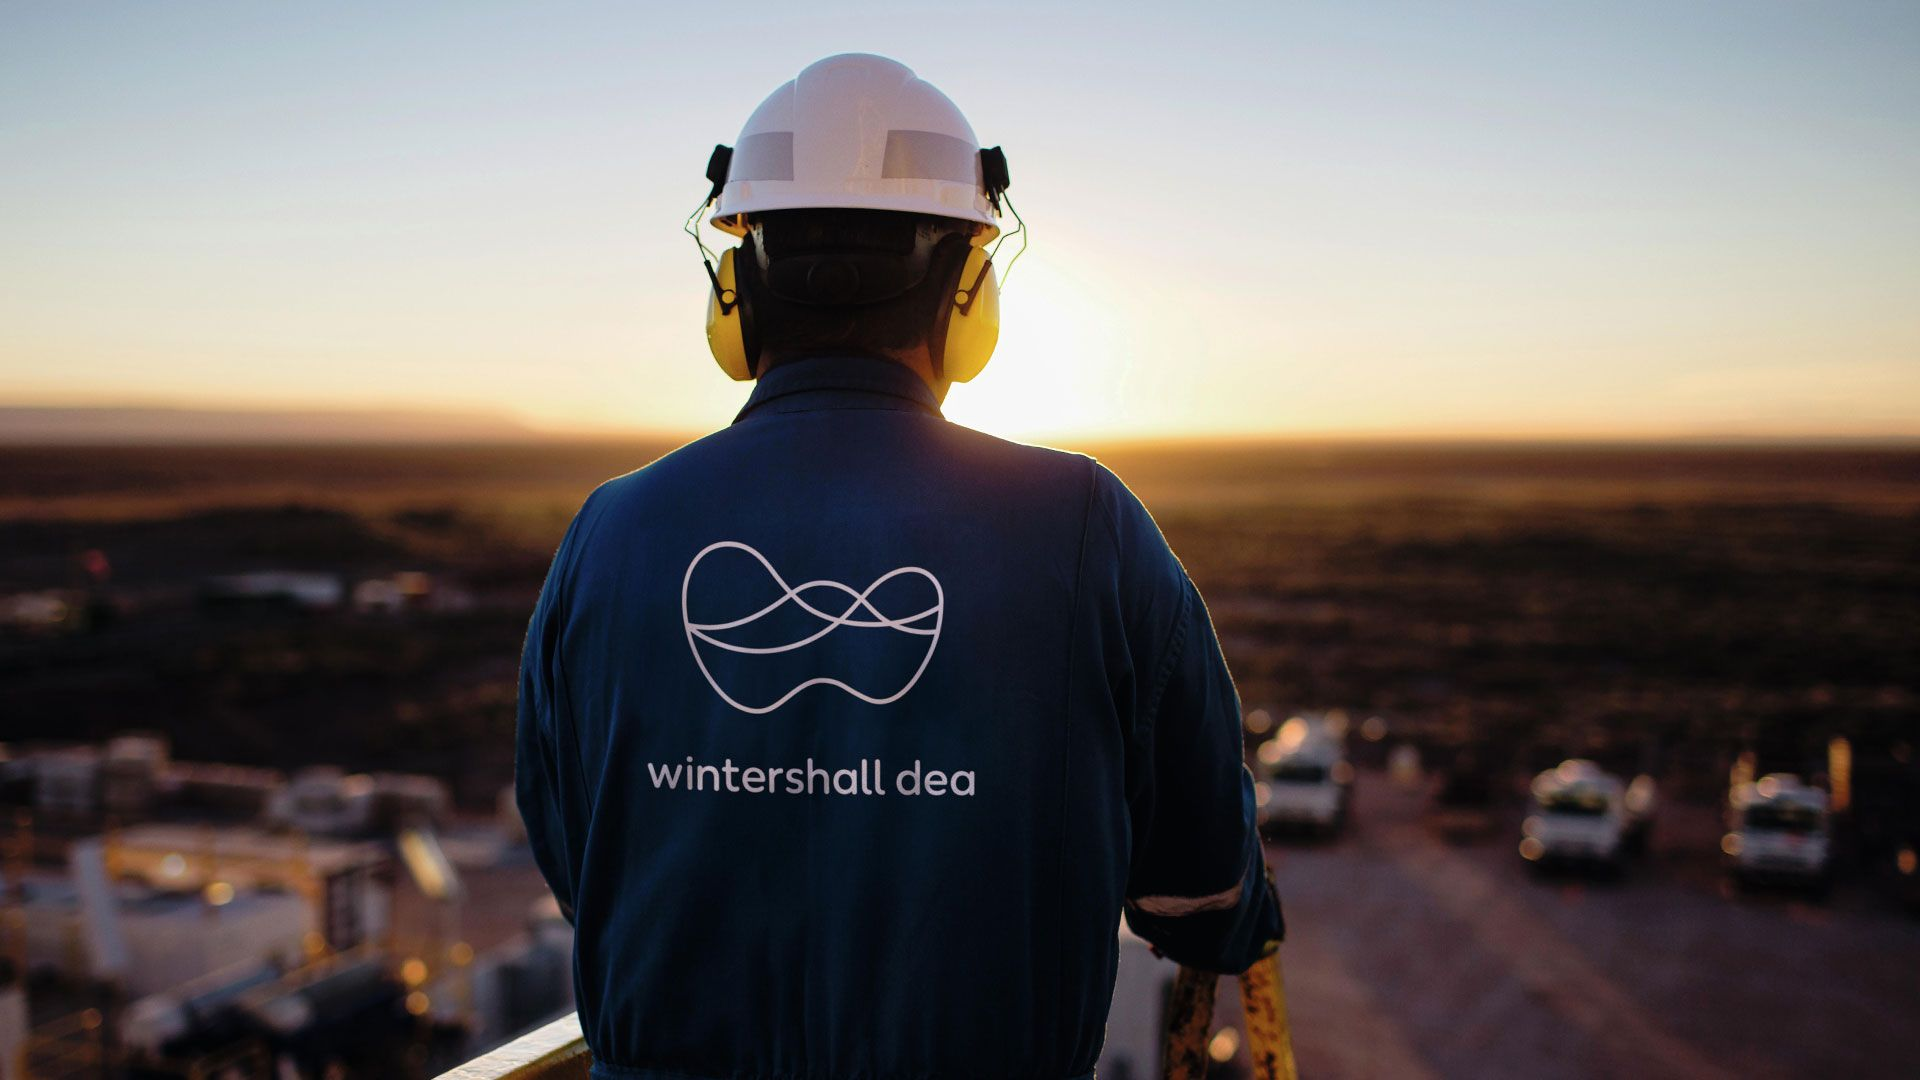 Wintershall Dea employee production site logo sunset